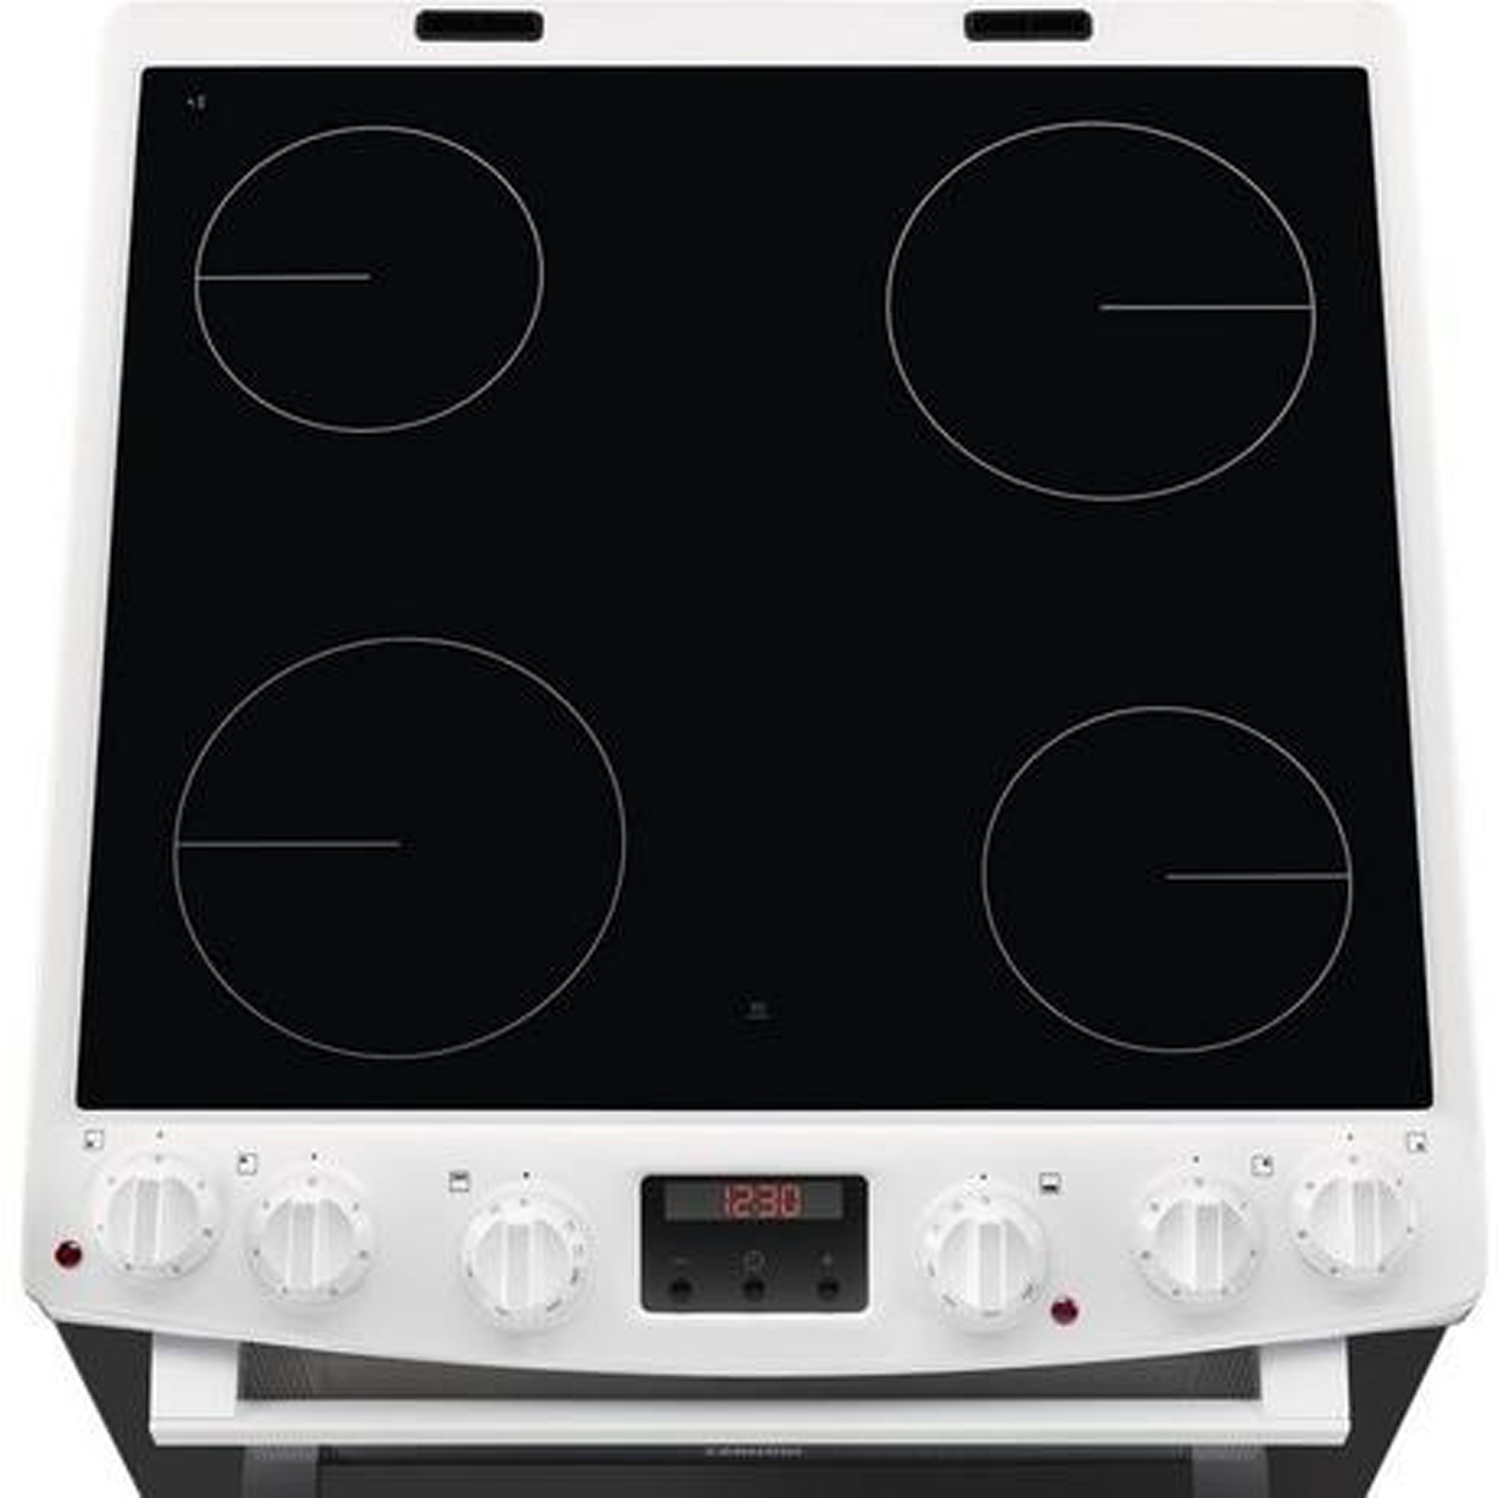 Zanussi 60cm Electric Double Oven with Ceramic Hob - White - A/A Rated - 3